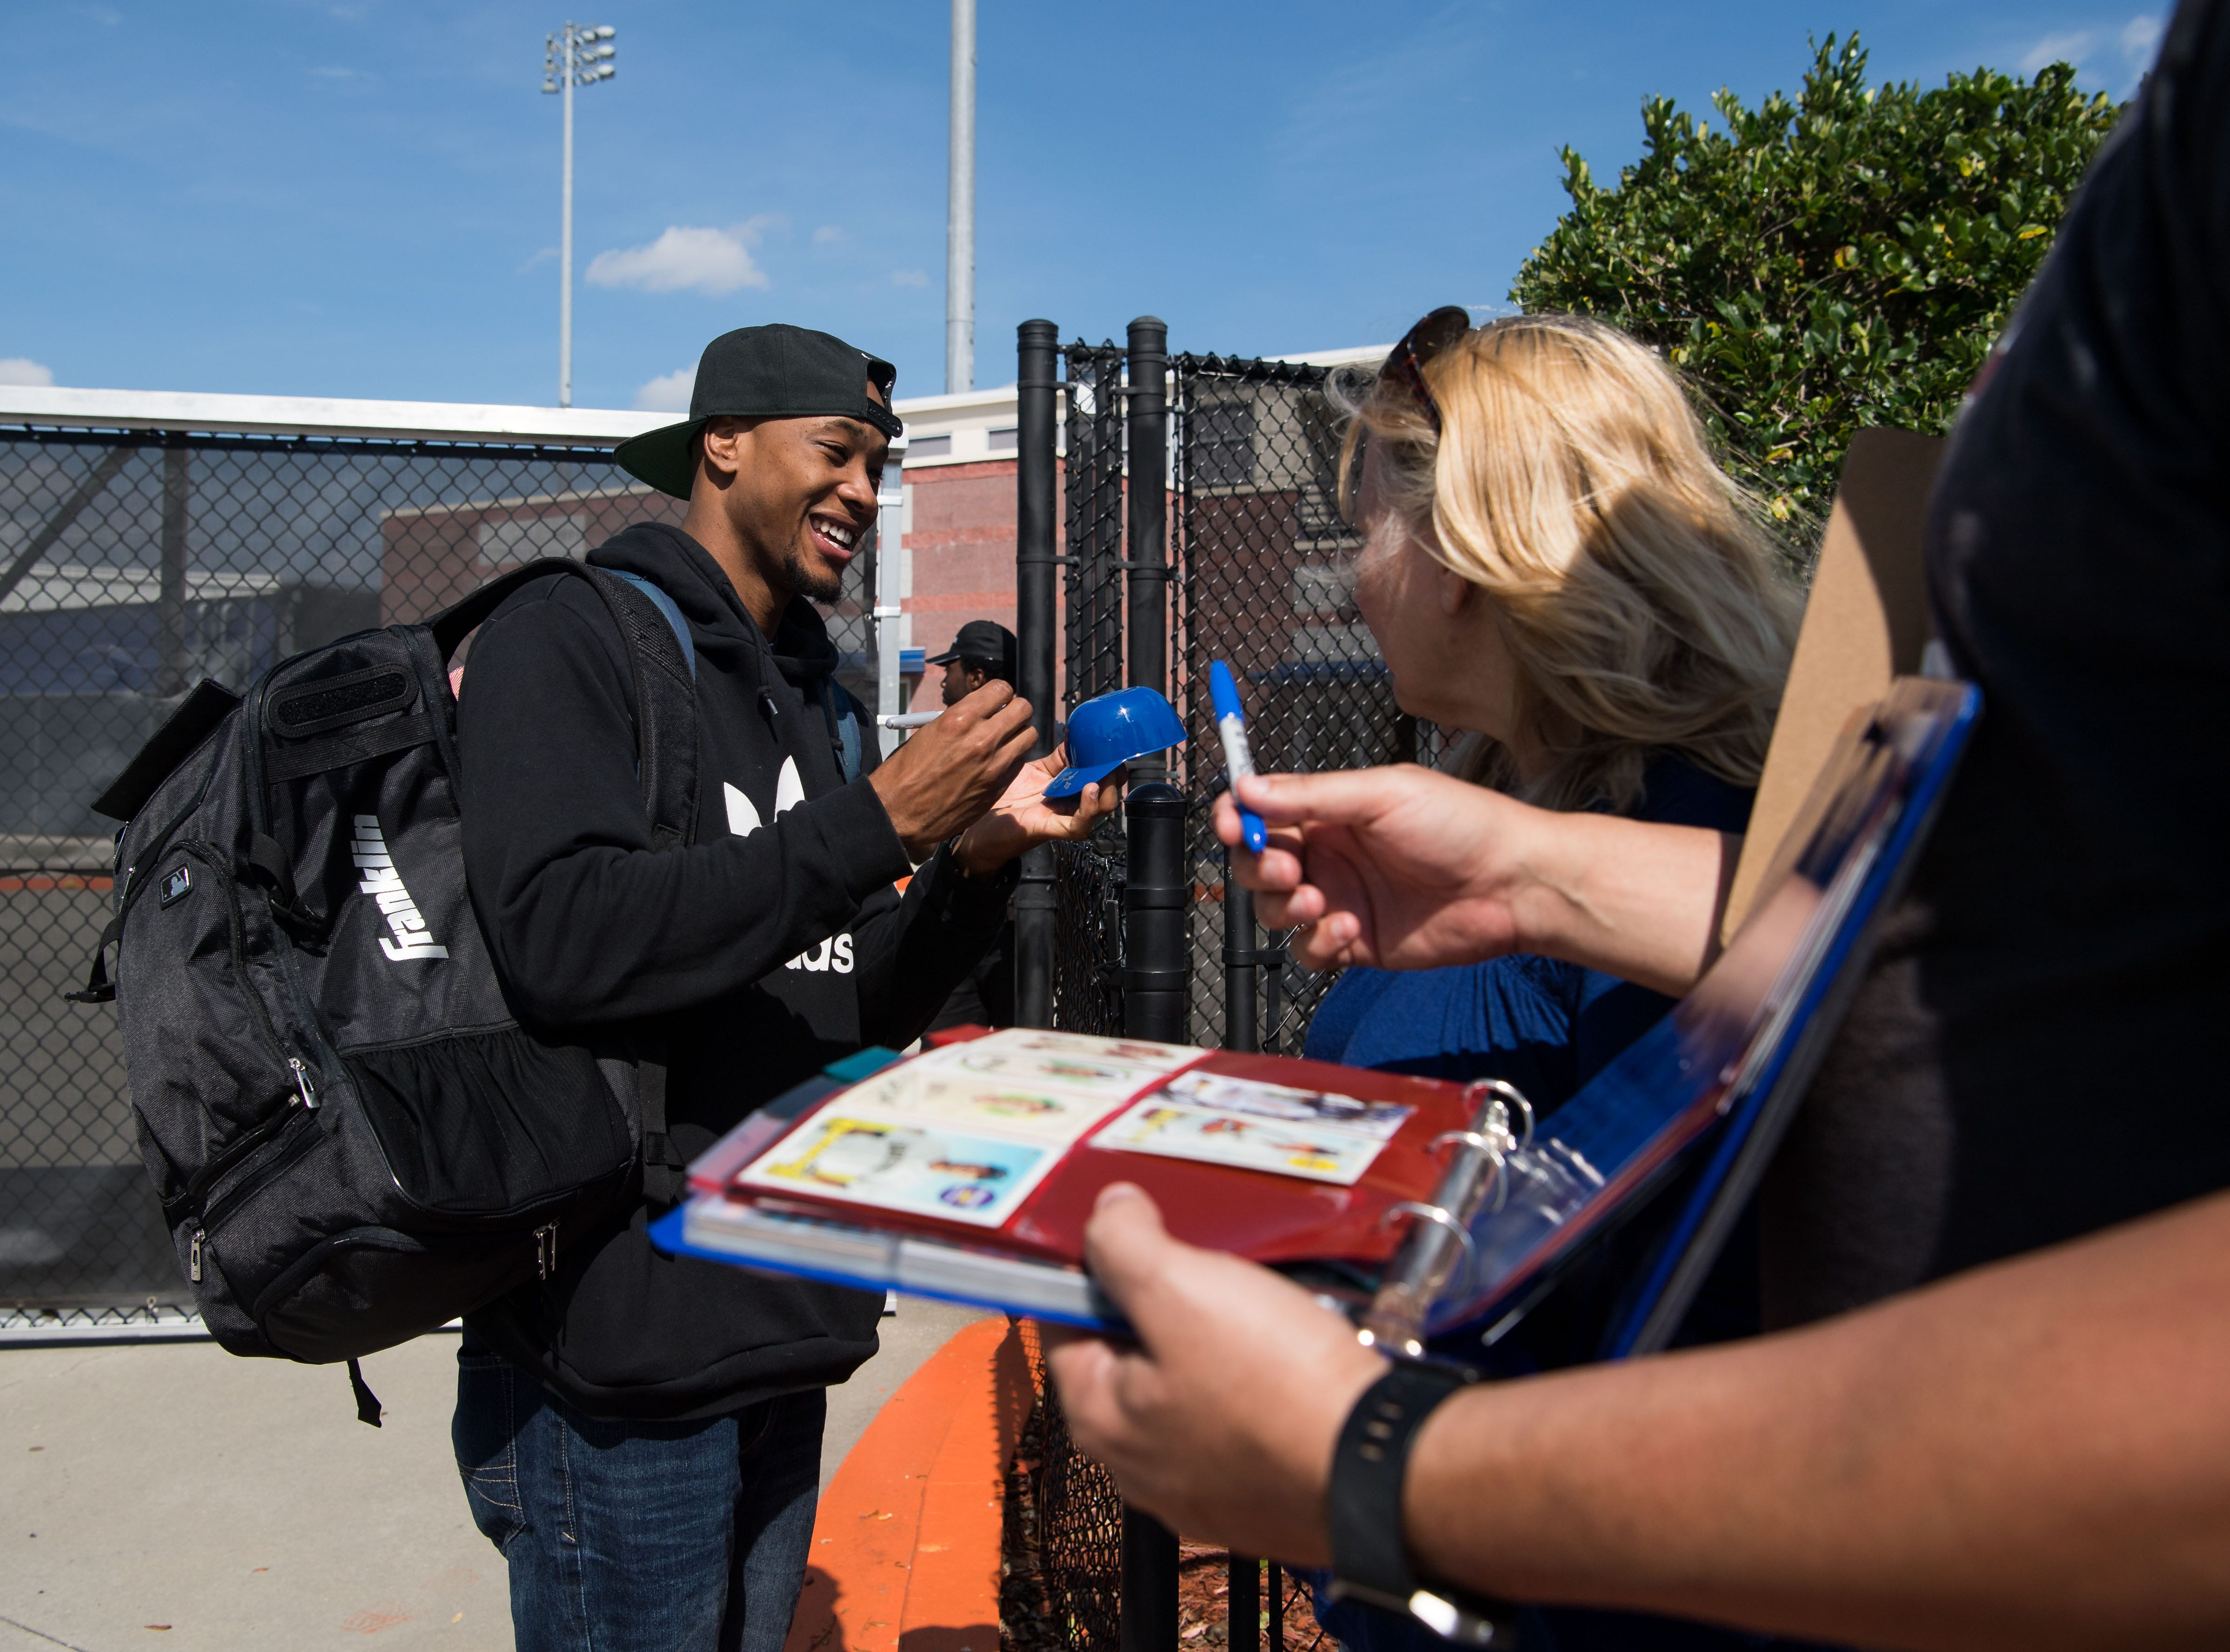 New York Mets outfielder Keon Broxton signs autographs and takes photos with fans attending spring training Saturday, Feb. 16, 2019, at First Data Field in Port St. Lucie.